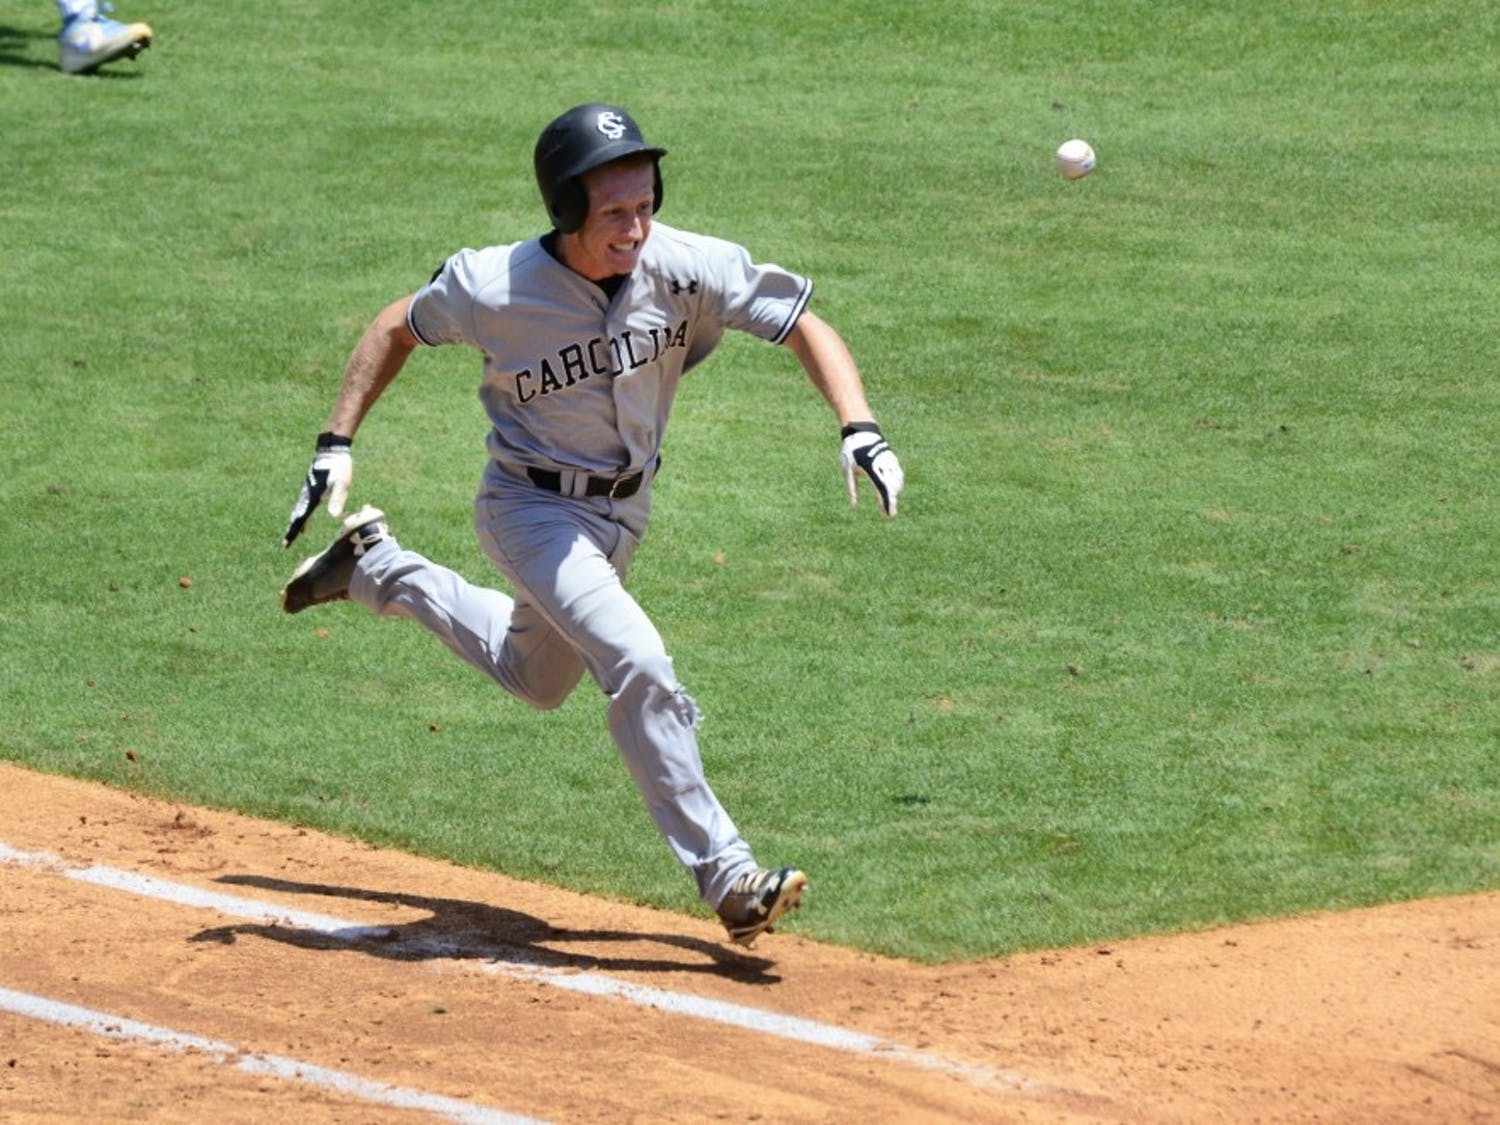 Tanner English races the ball to first base after a bunt.